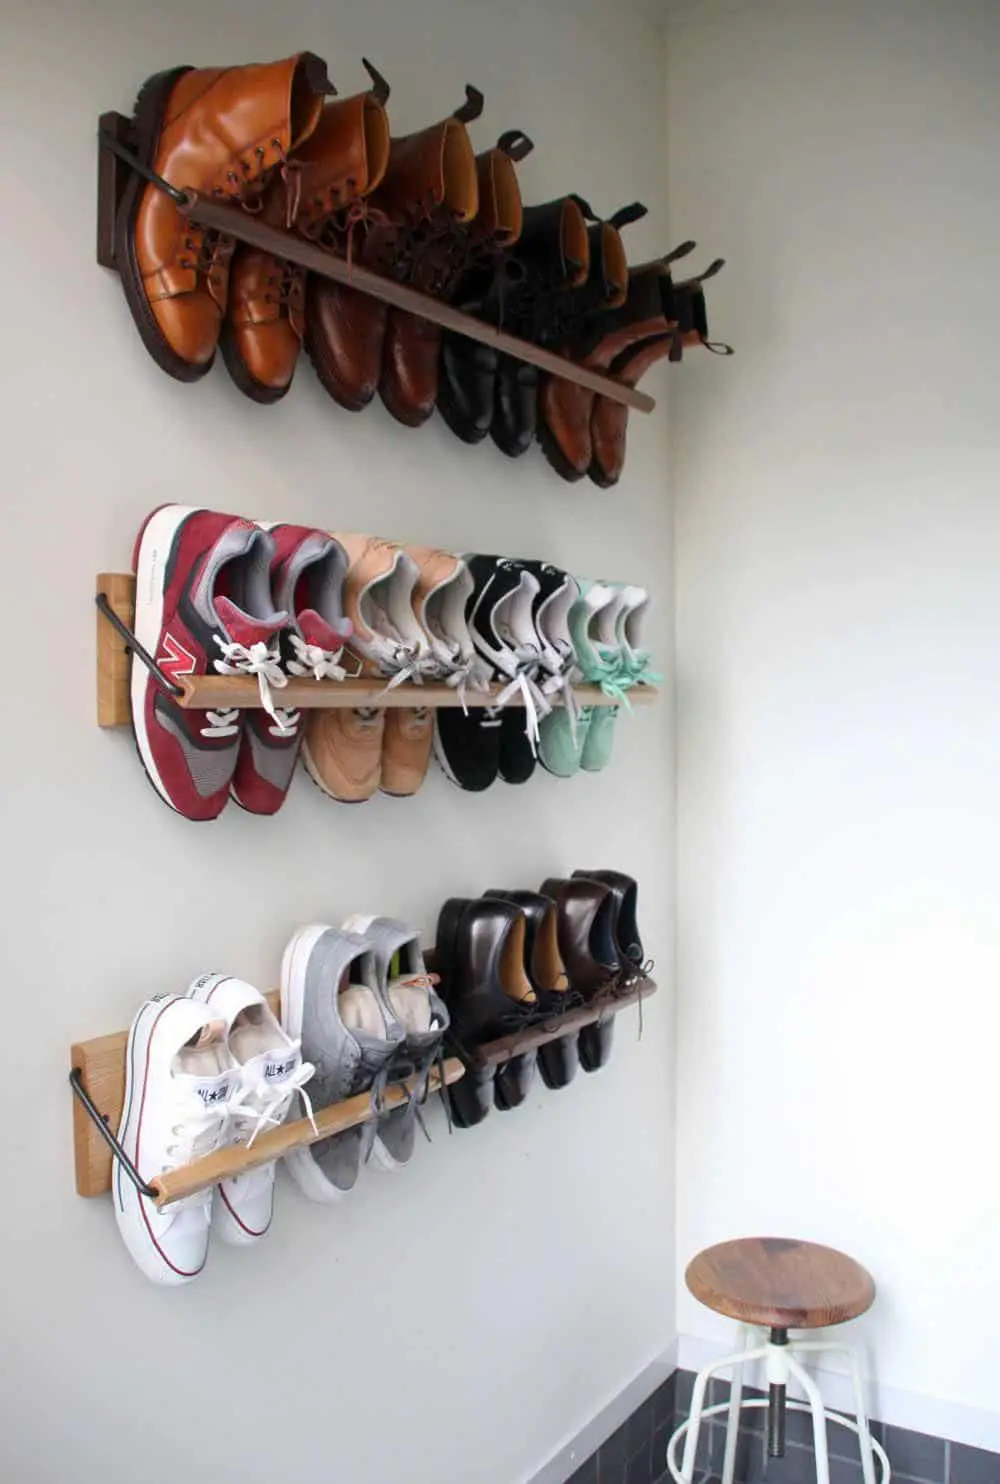 47 Smart Shoe Storage Ideas To Save Space In 2020 Diy Shoe Storage Diy Shoe Rack Diy Rack